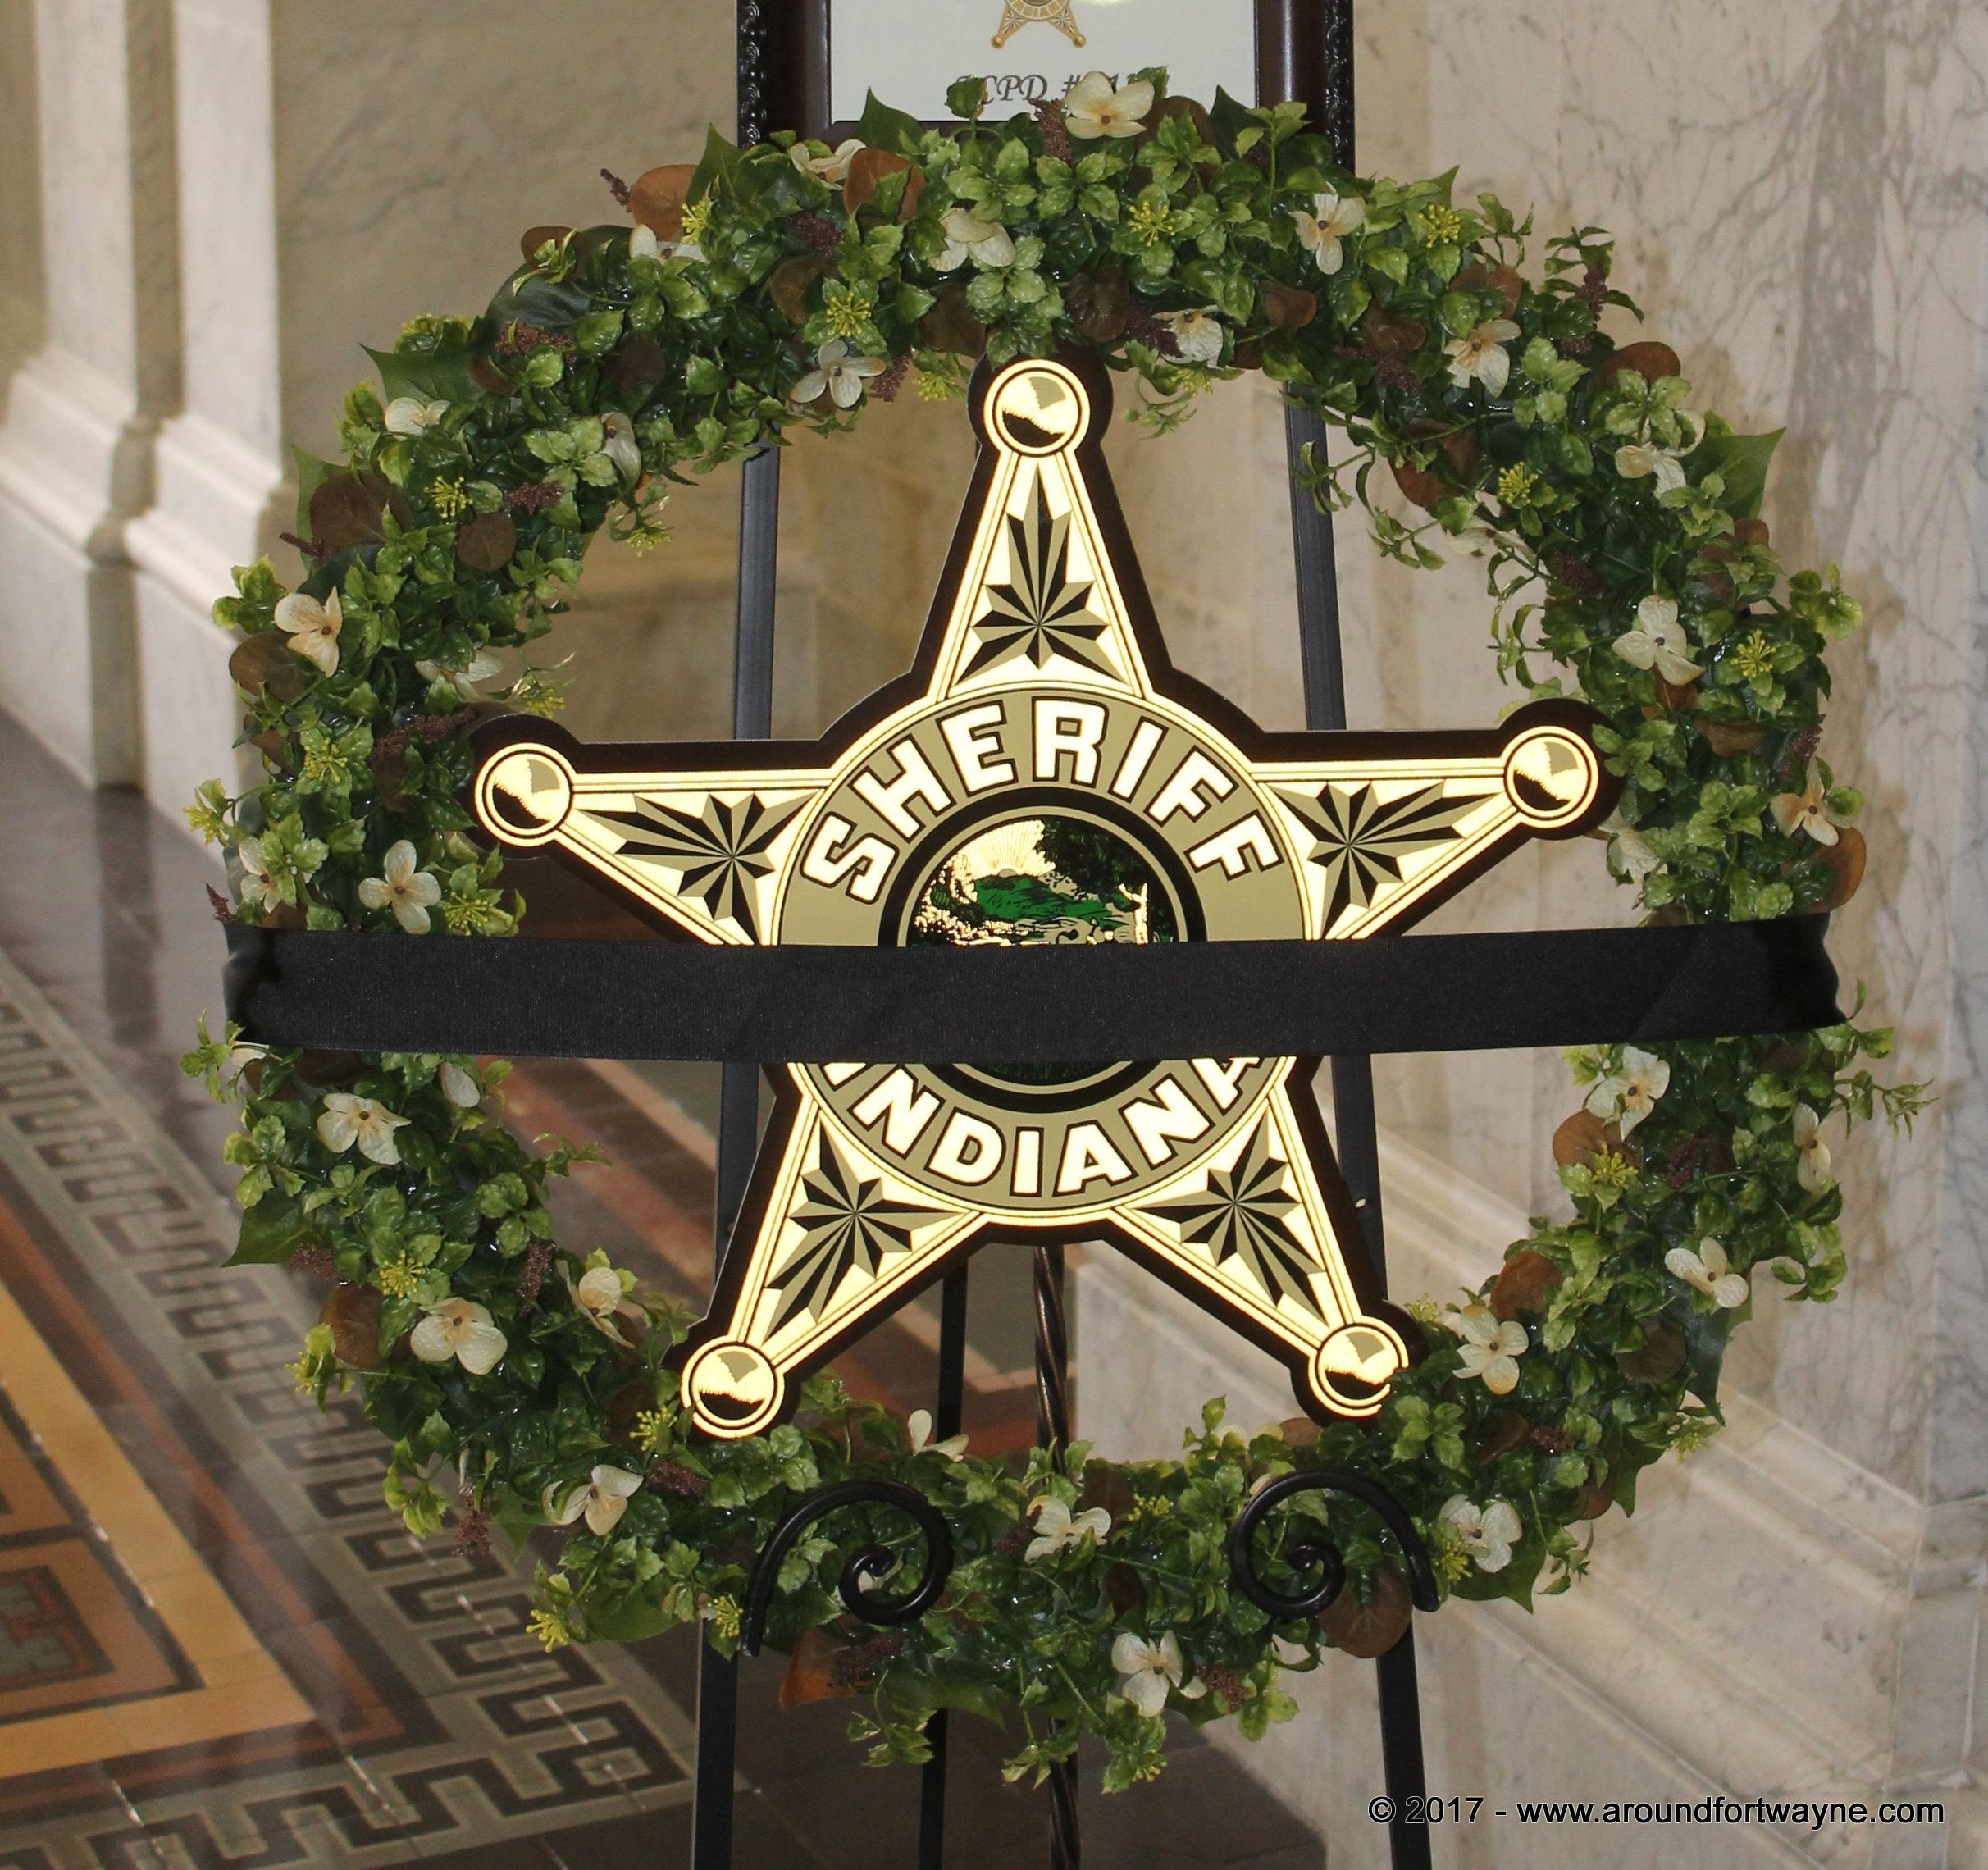 Memorial wreath outside the Allen County Sheriff's office in honor of Sgt. Joseph Cox.